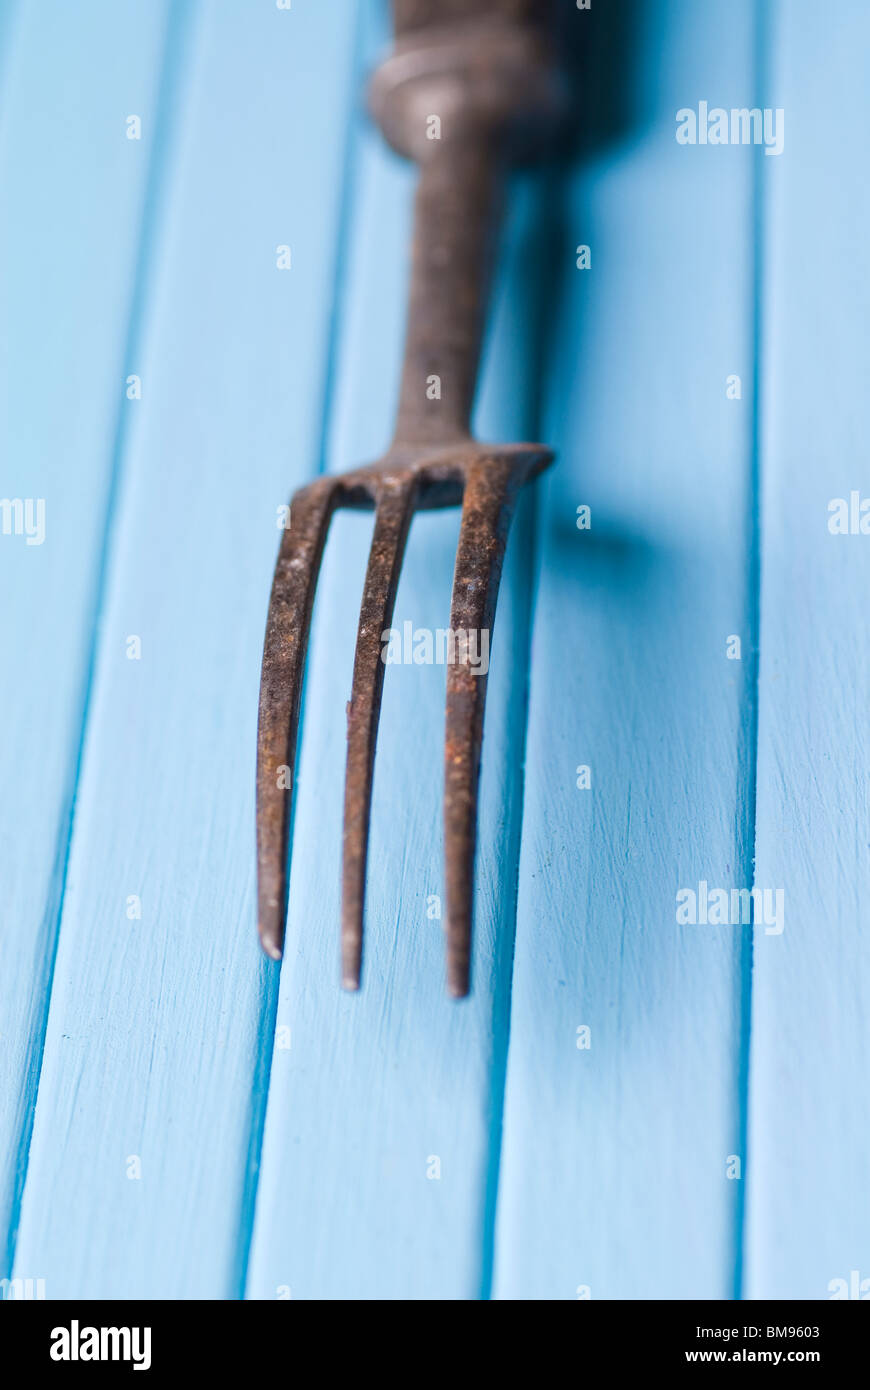 Old fashioned fork rusted over a blue wooden background - Stock Image